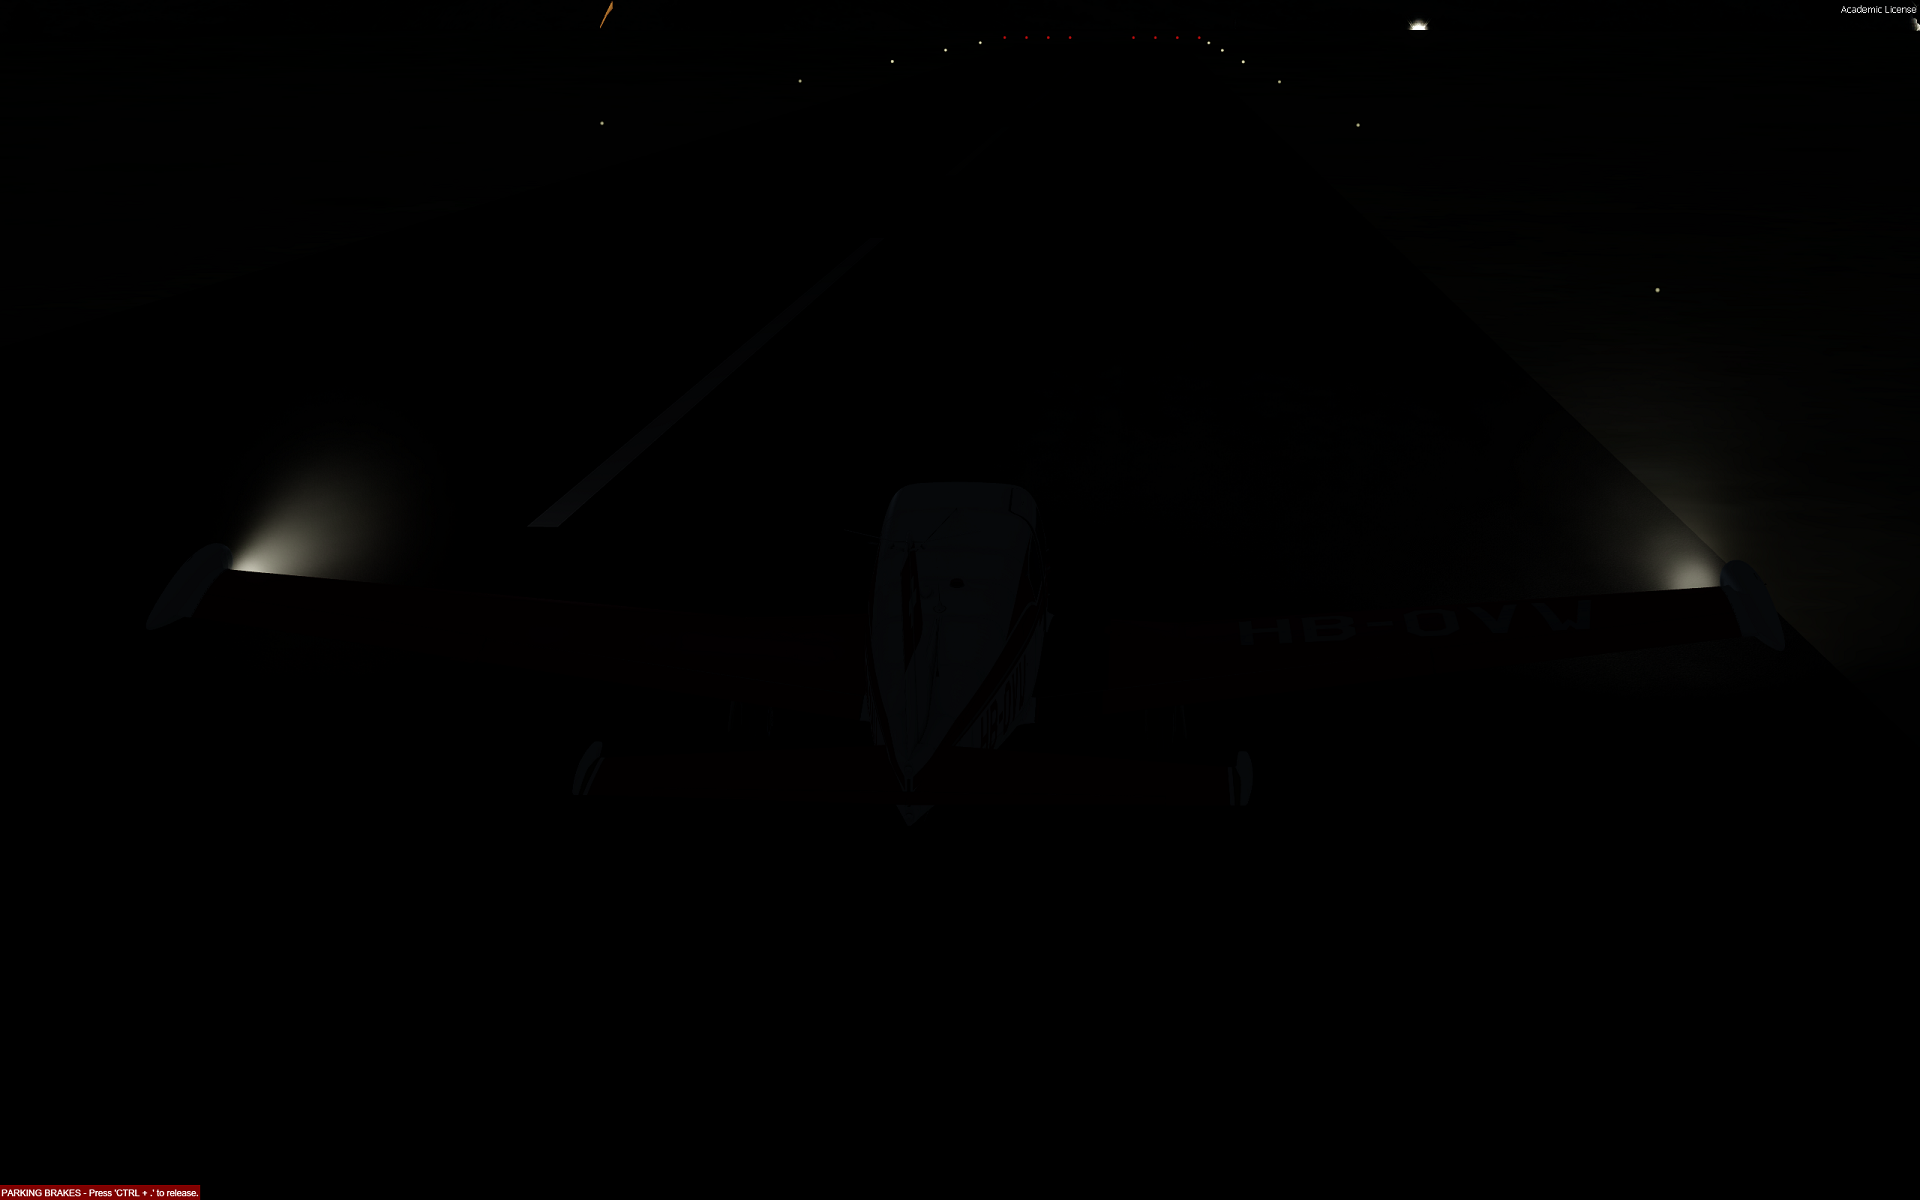 P3D v4 Comanche configurator has no landing lights - The A2A